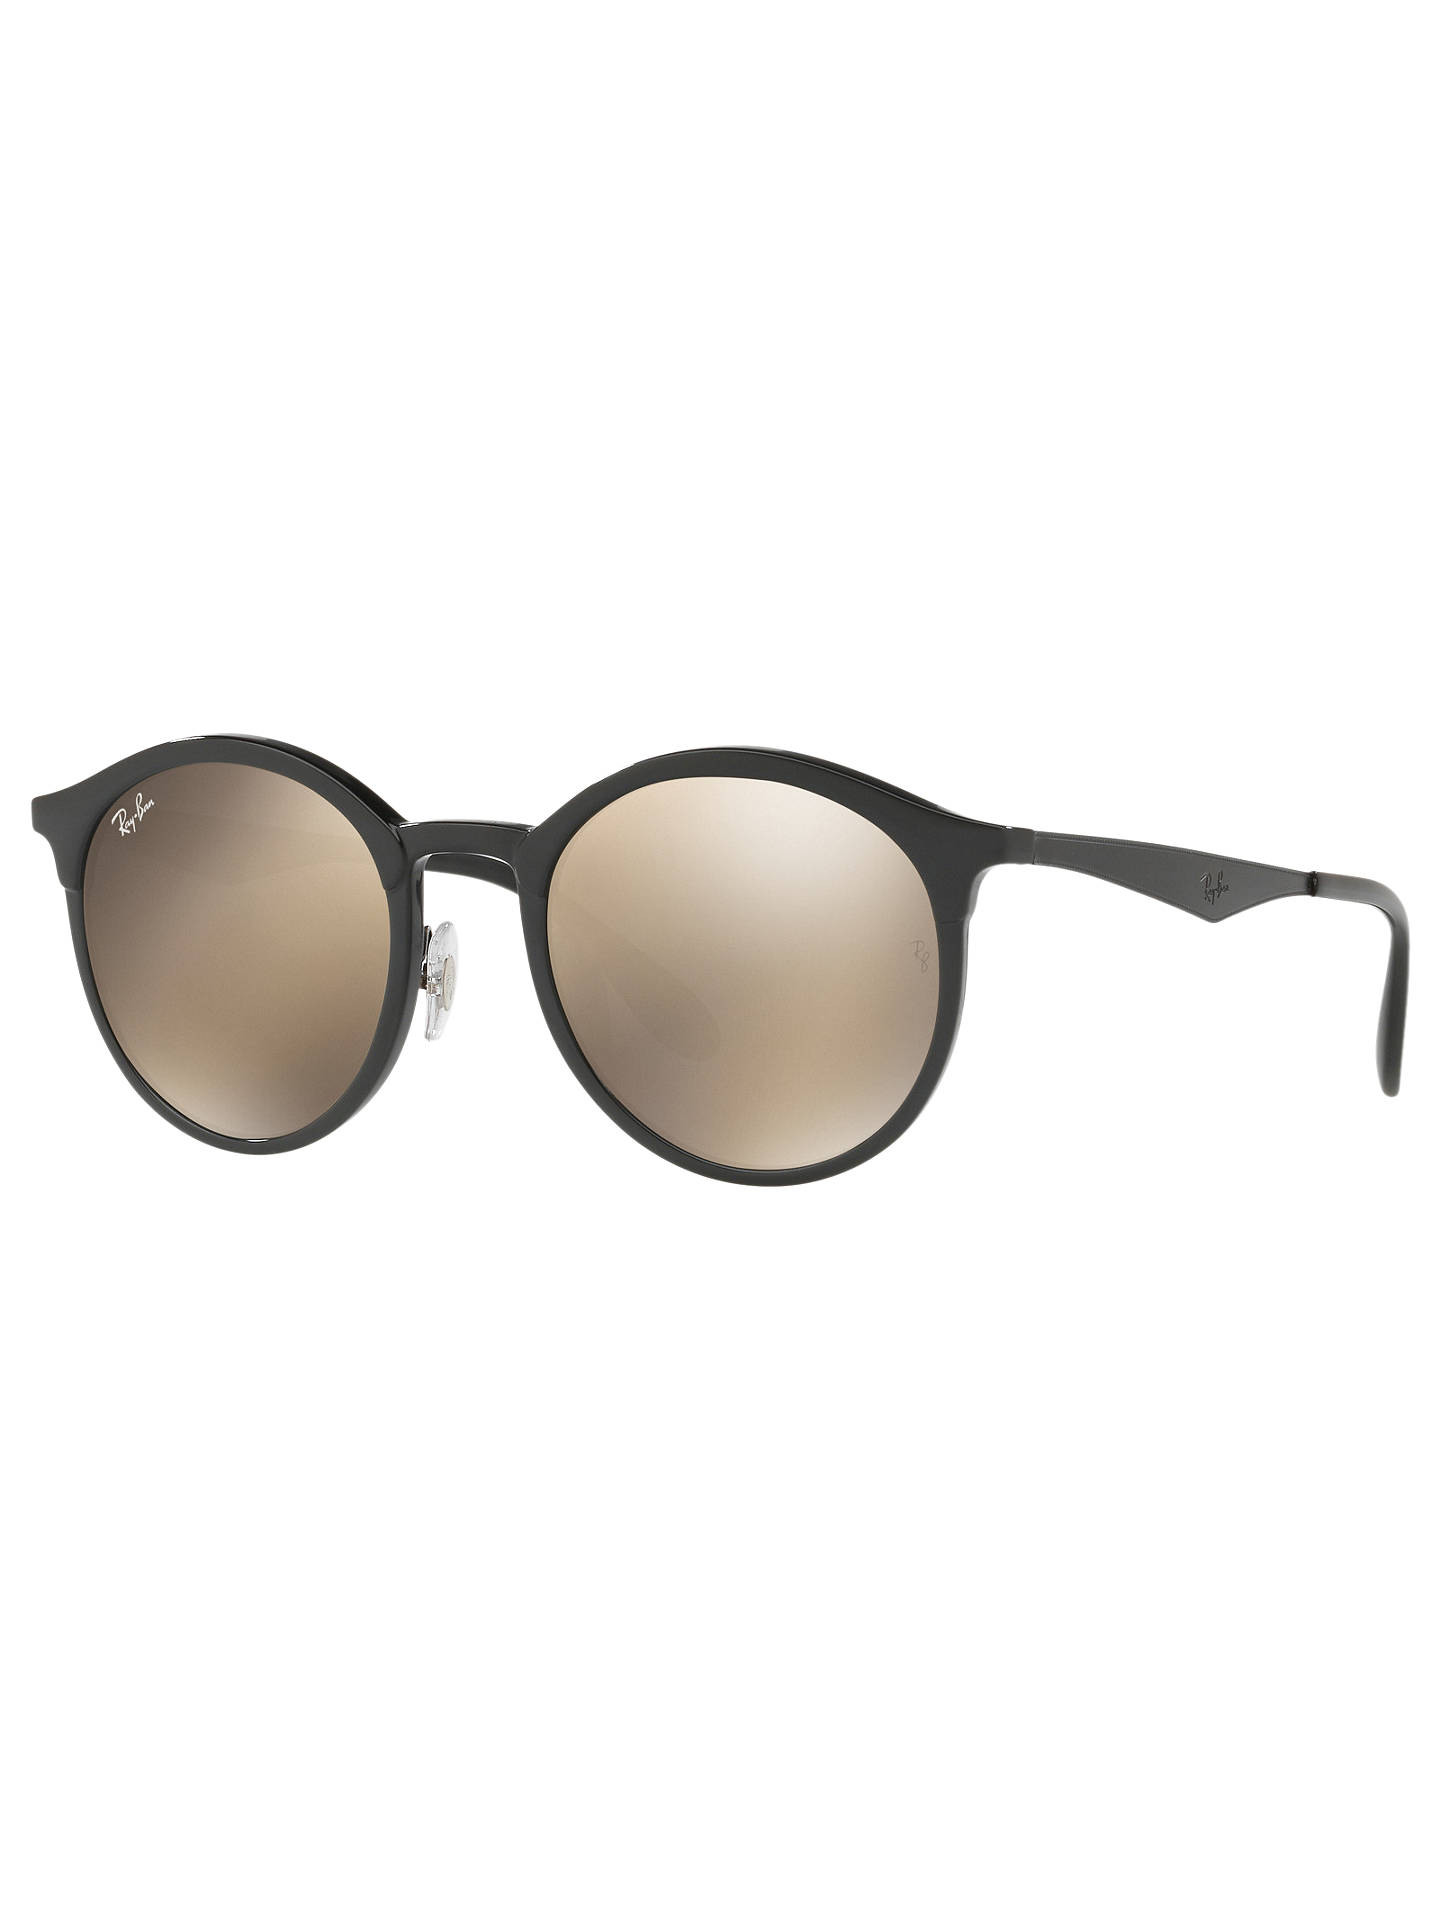 a1fc917a620 BuyRay-Ban RB4277 New Emma Oval Sunglasses